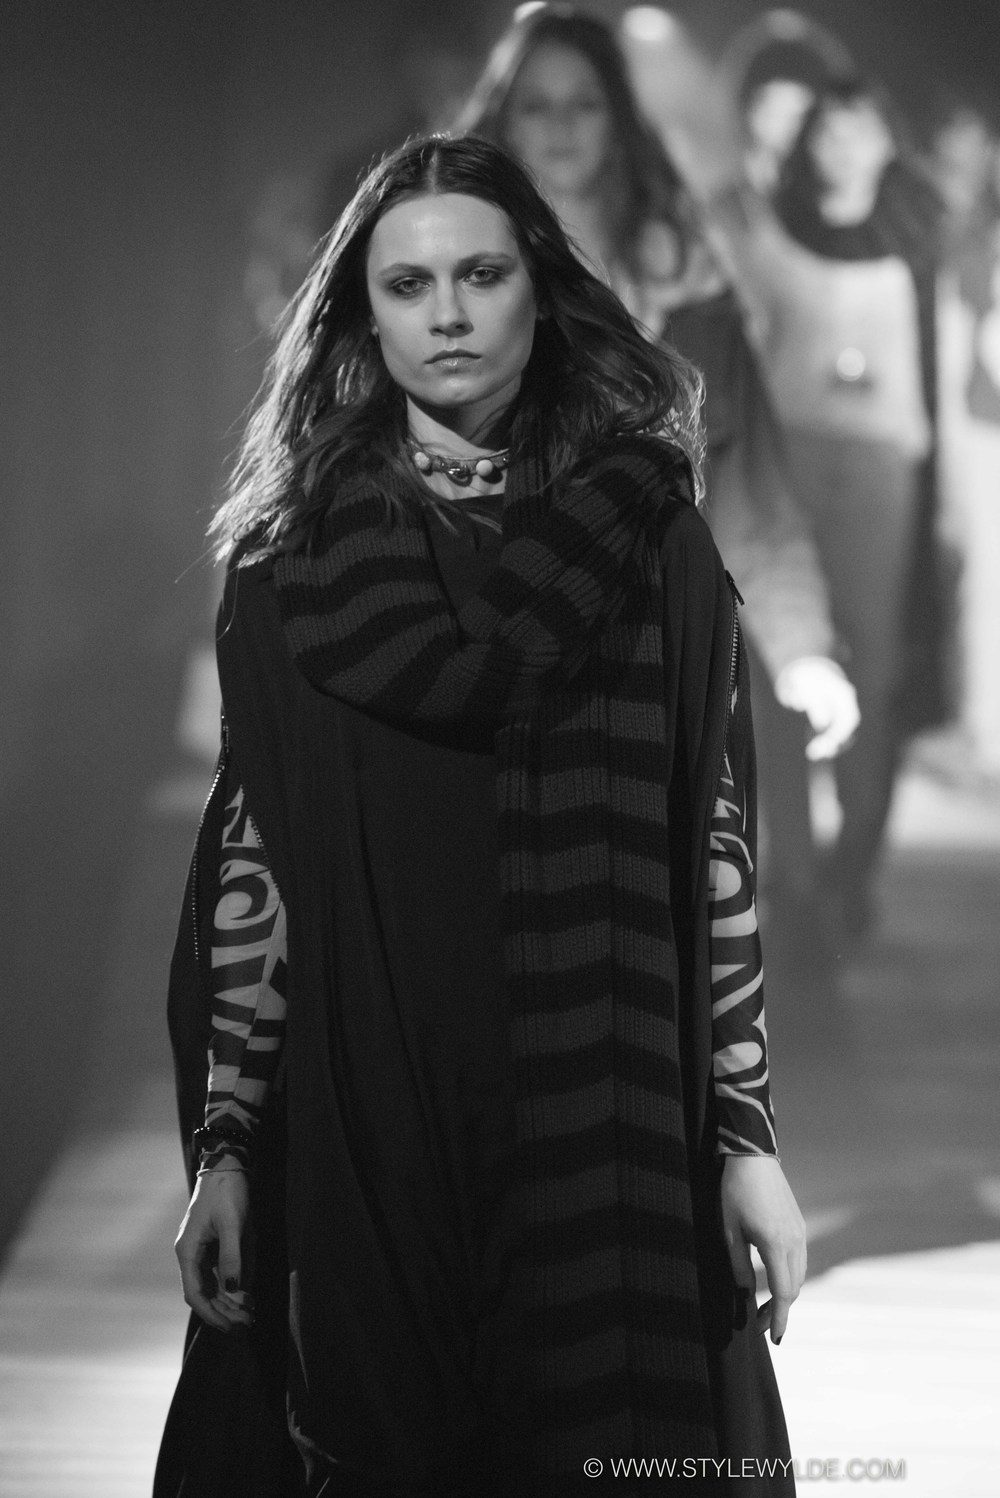 StyleWylde-AndreaPompilio-AW16-Bkstg-28.jpg